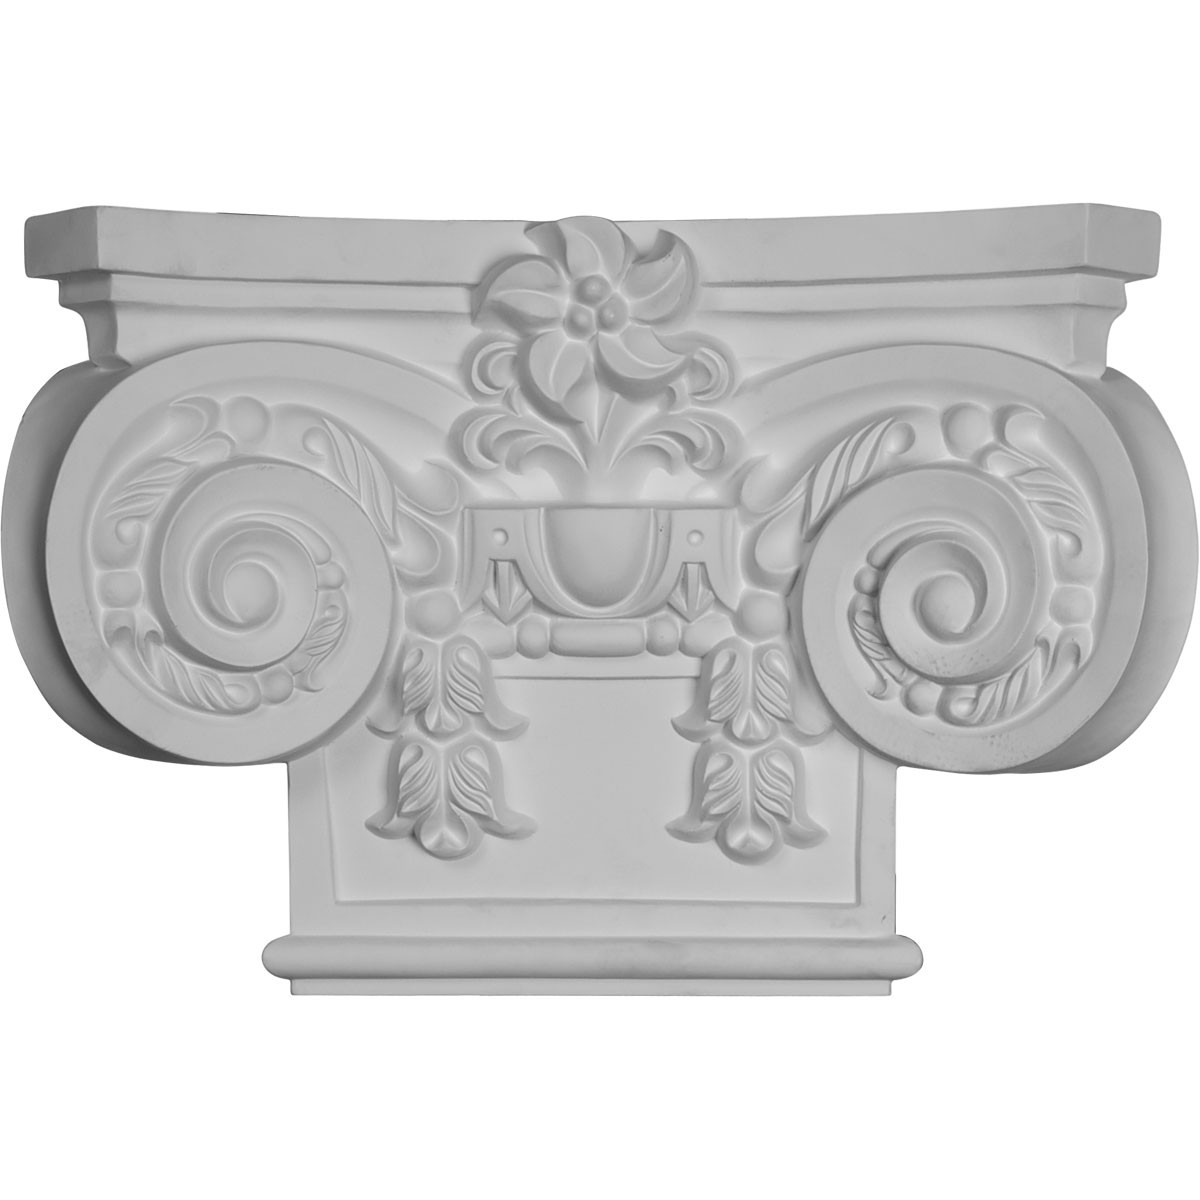 "EM-CAP19X13X05EM - 19 5/8""W x 13 3/8""H Large Empire Capital with Necking (Fits Pilasters up to 10 3/4""W x 7/8""D)"